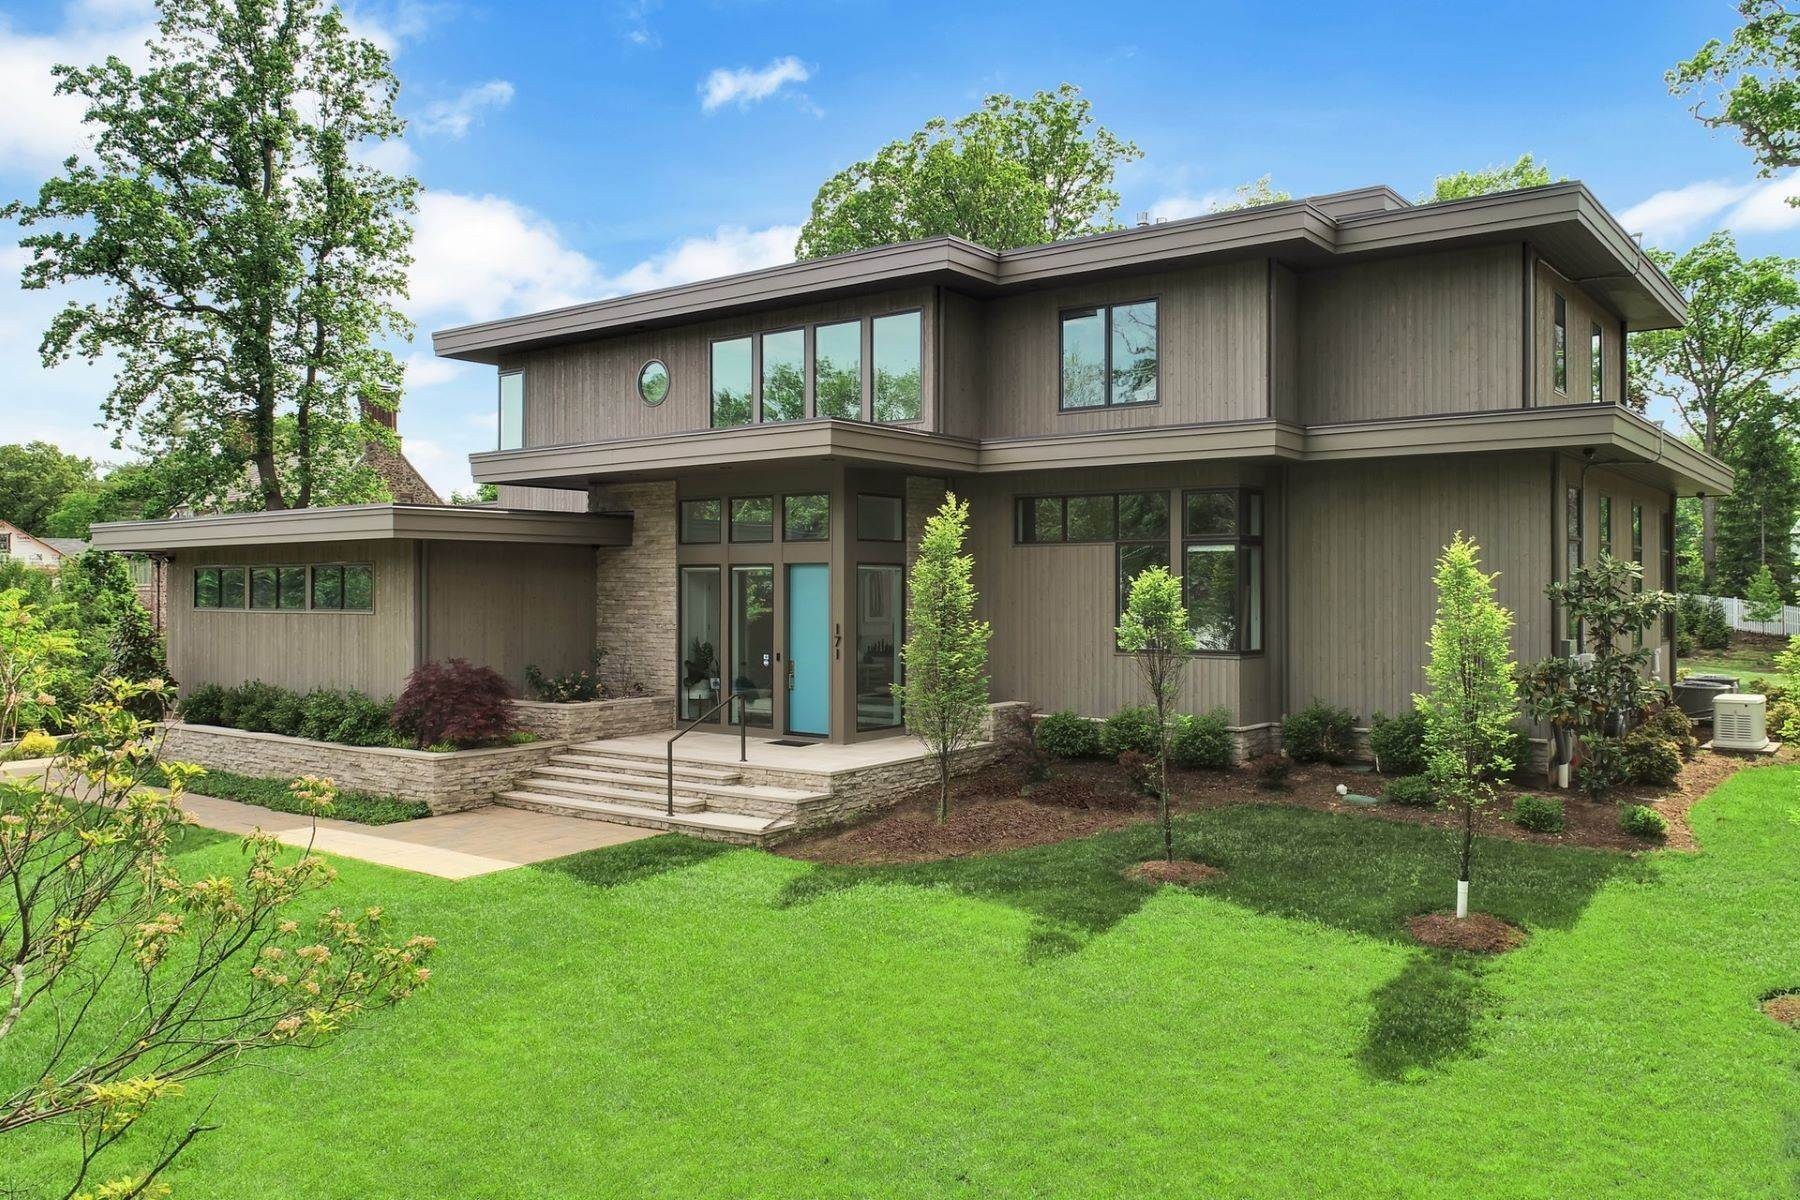 Single Family Homes for Sale at Modern Masterpiece 171 Highland Avenue Short Hills, New Jersey 07078 United States